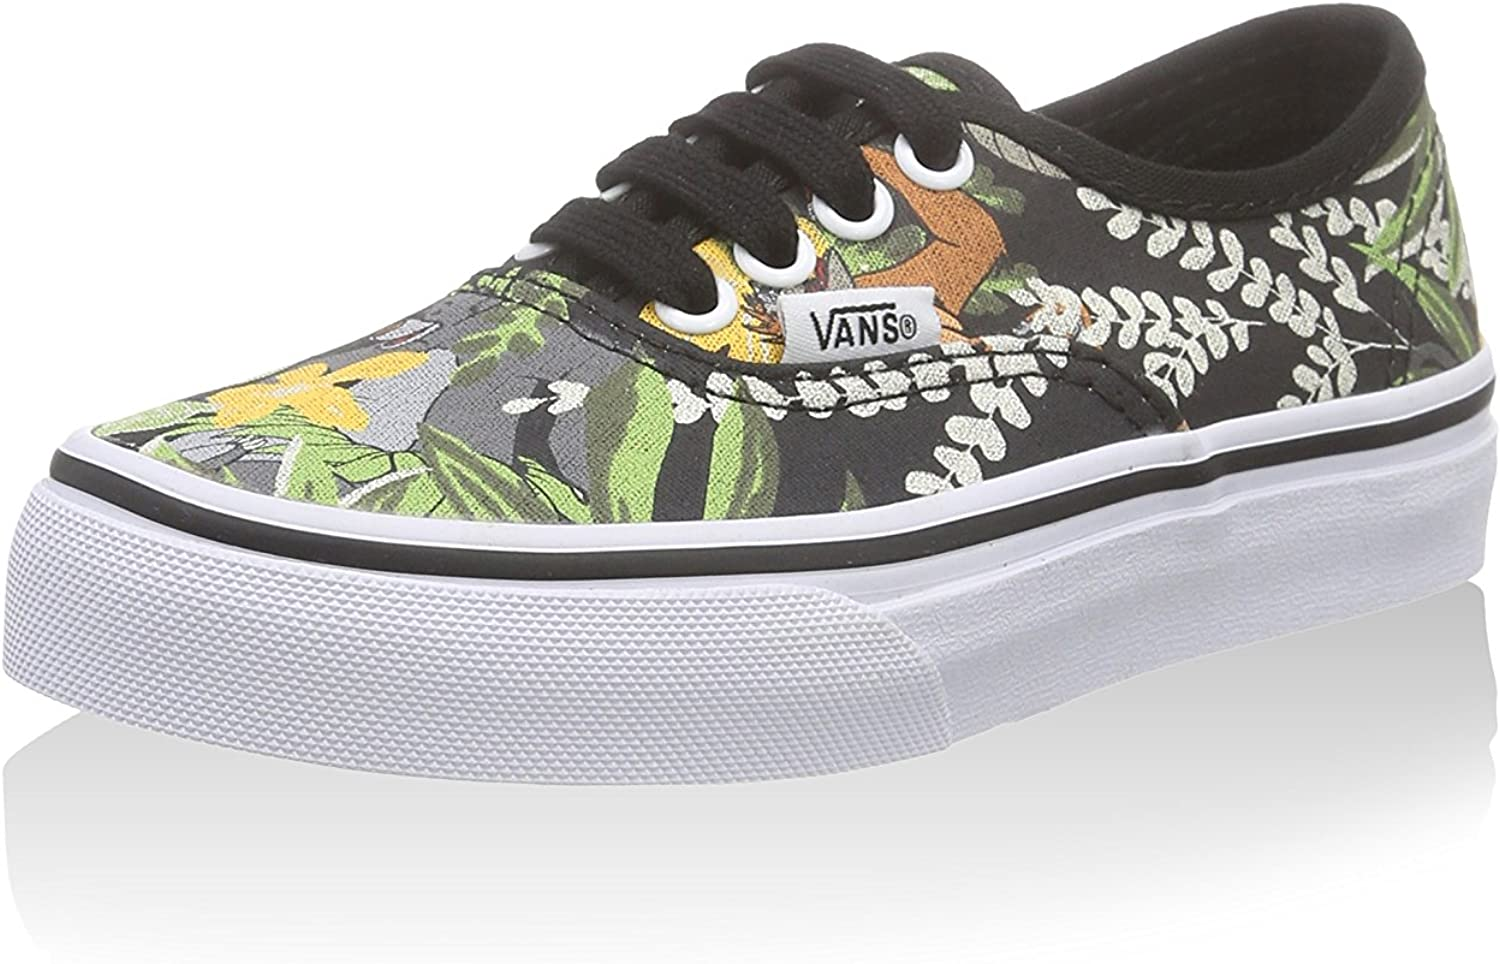 Vans Kid's Authentic shoes Disney The Jungle Fashion Sneakers